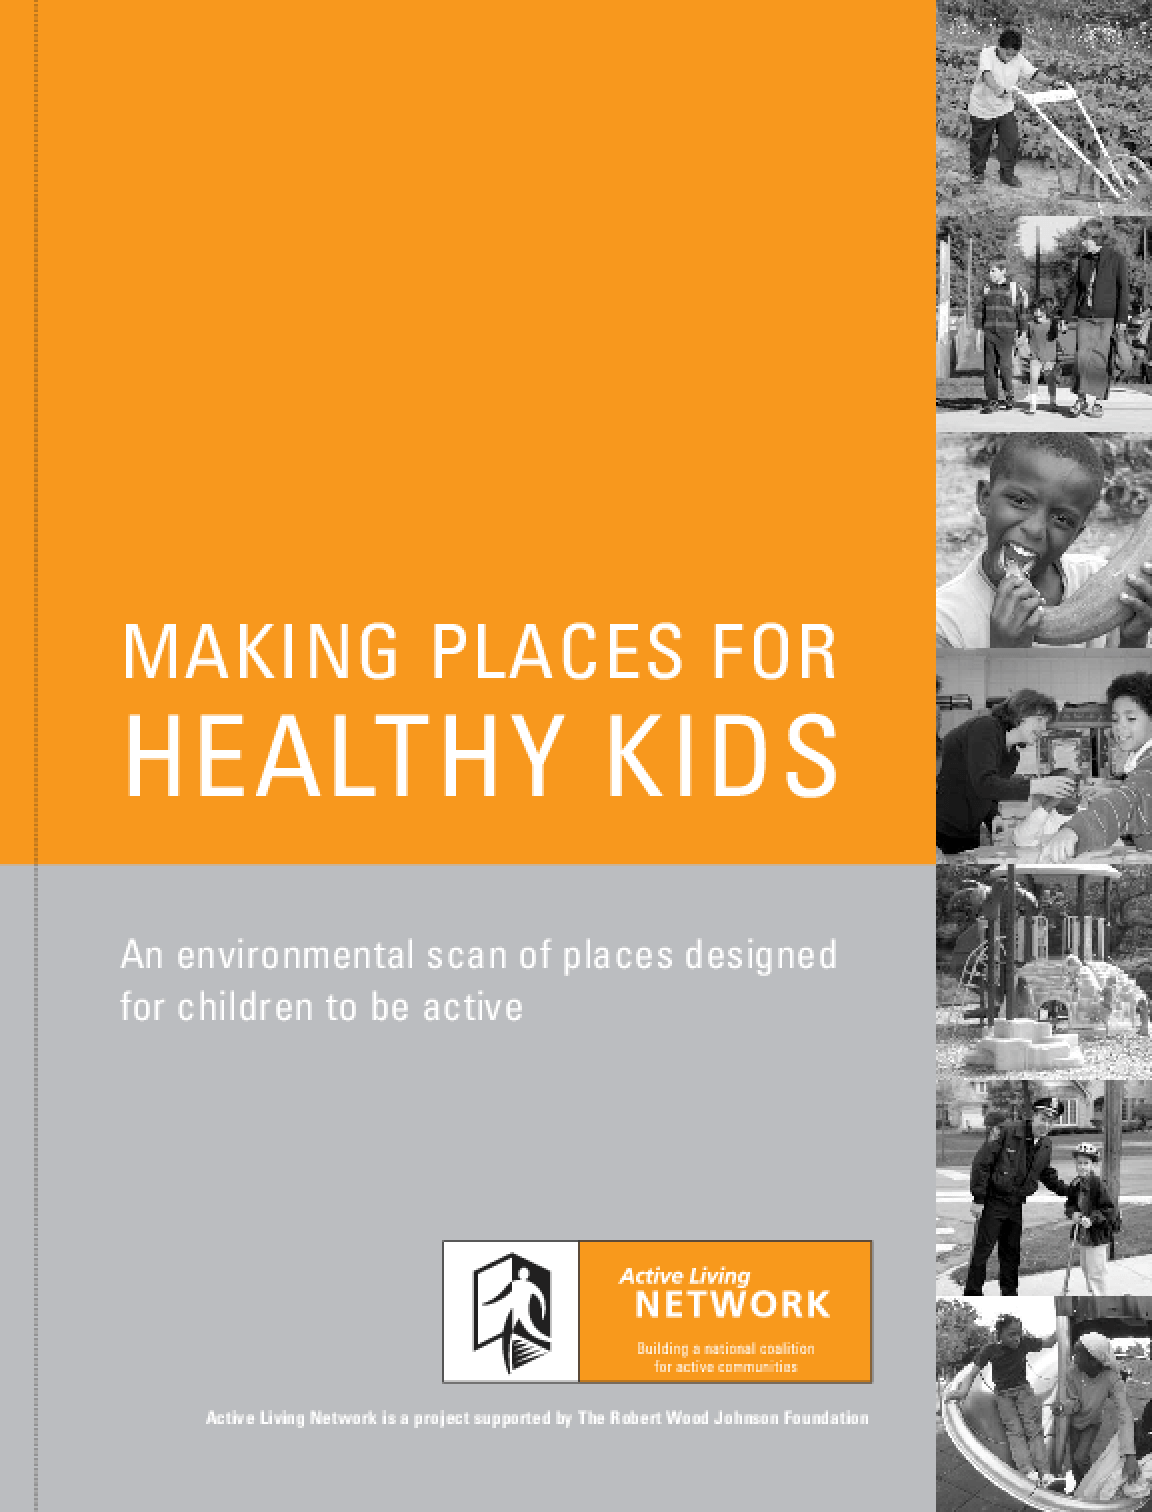 Making Places for Healthy Kids